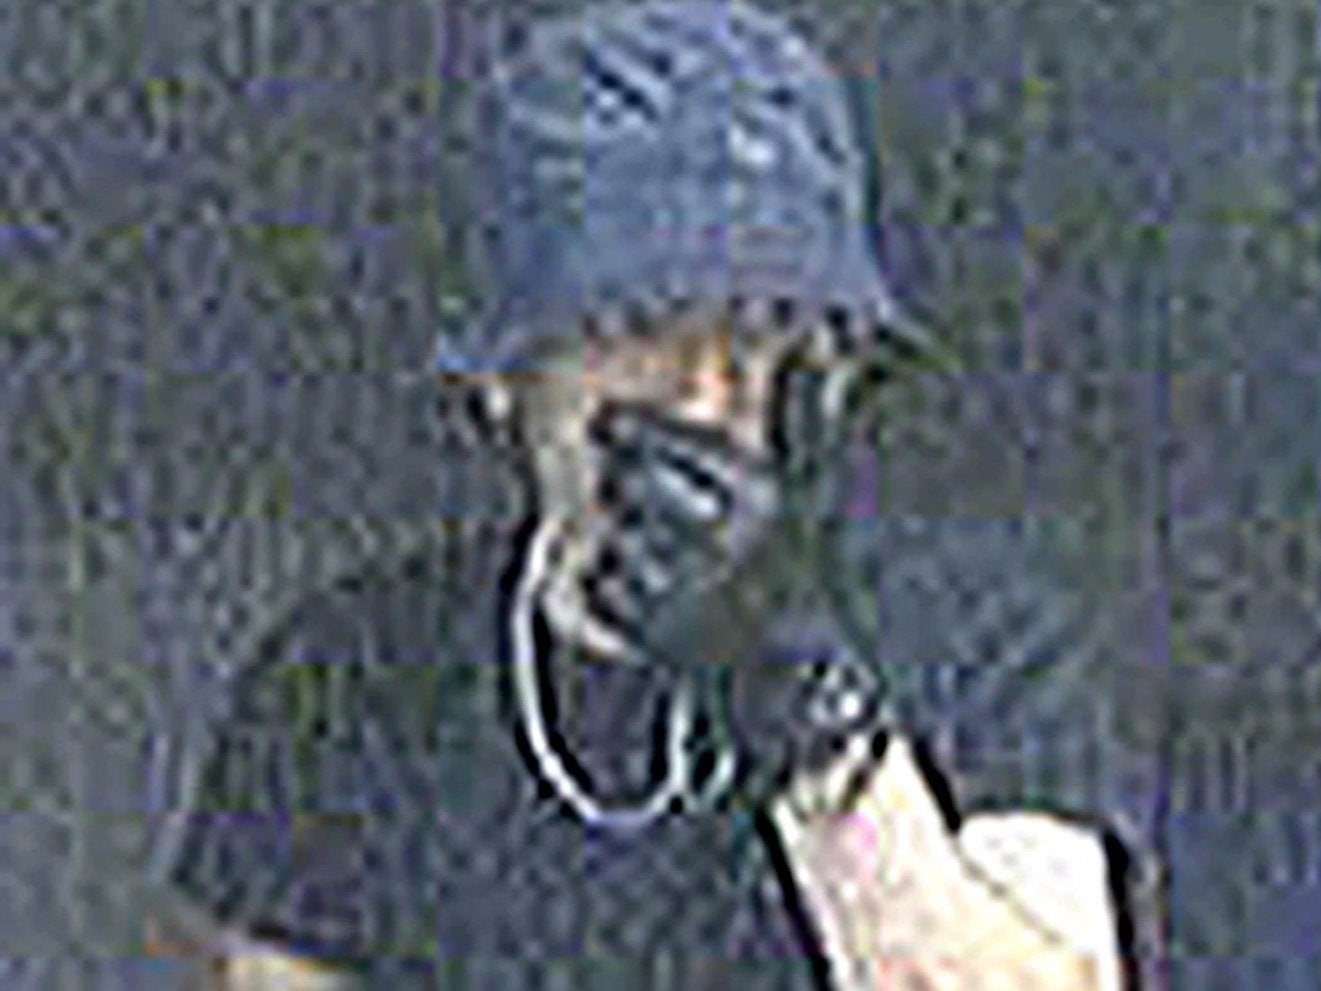 'Wimbledon Prowler' who stole £500,000-worth of loot from affluent London homes unmasked as Kosovan chip shop owner